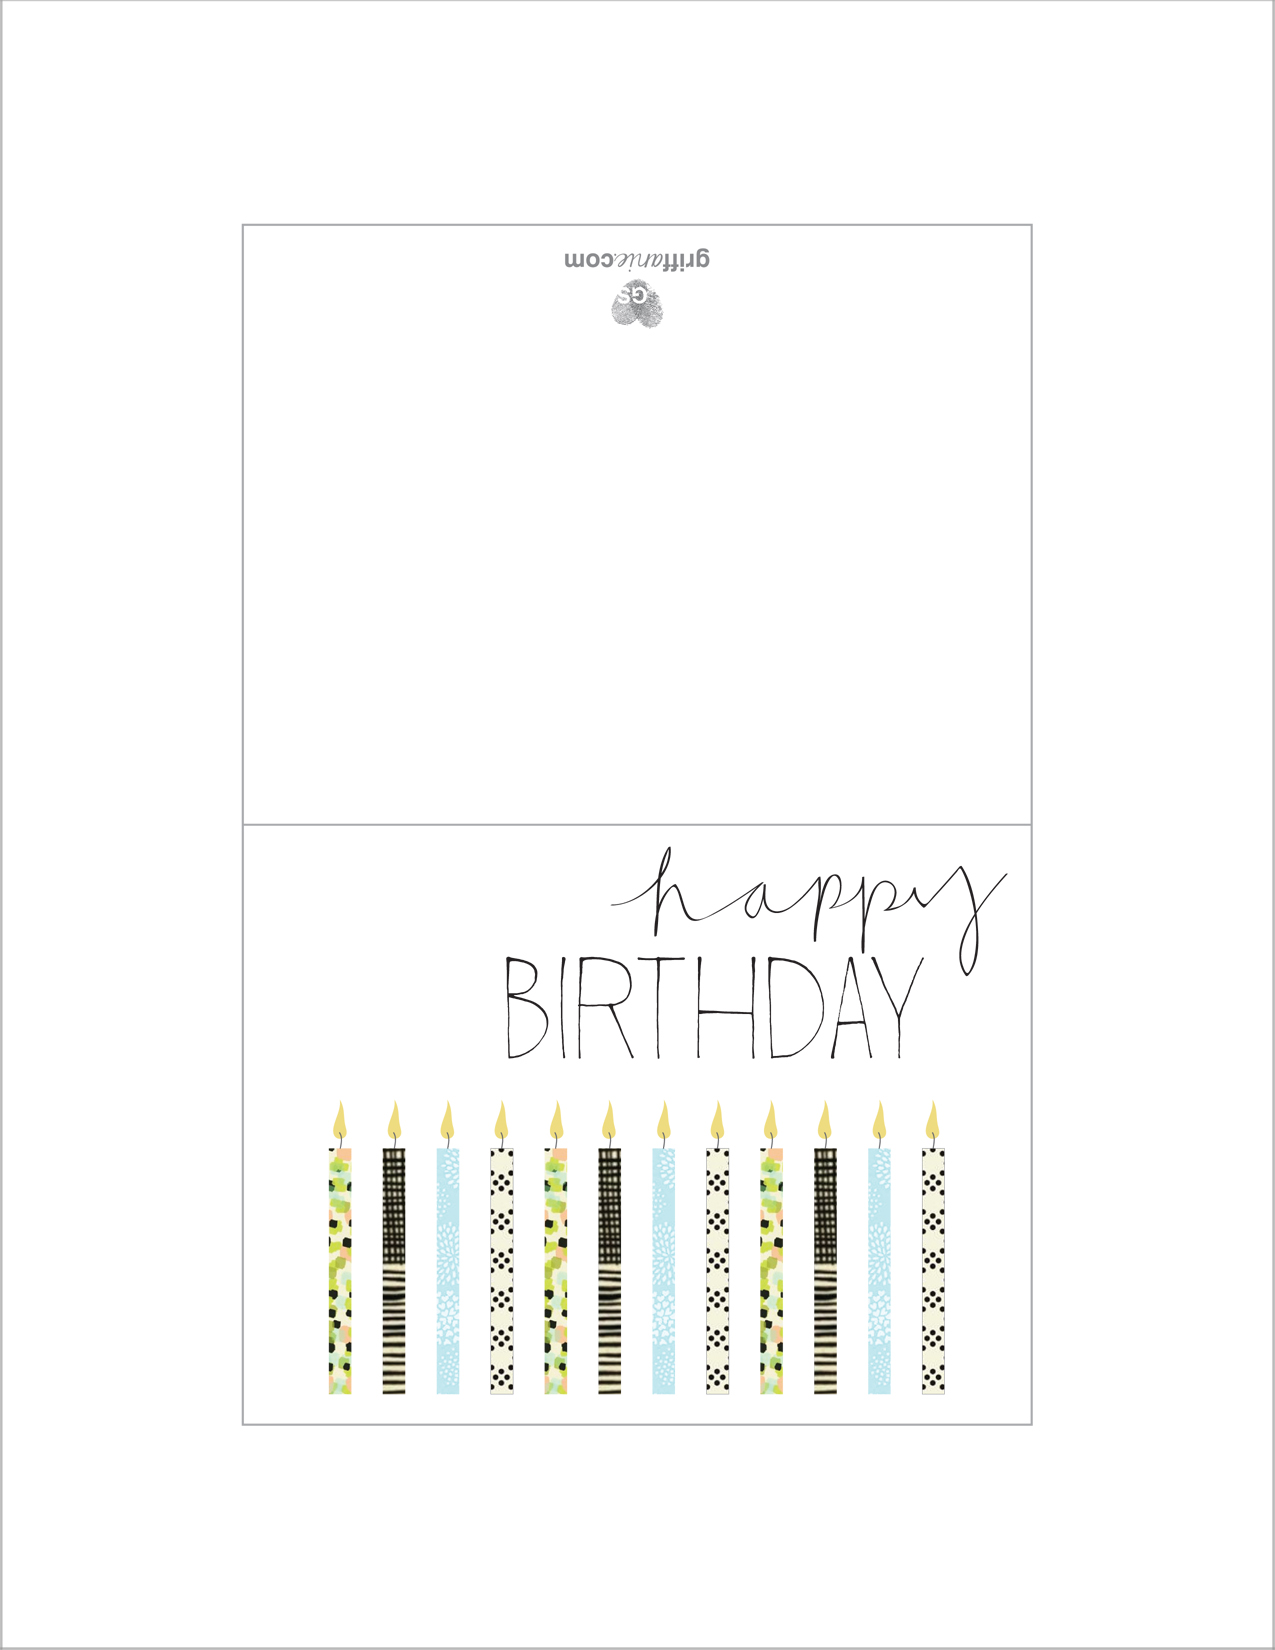 father birthday card template ; birthday-card-for-dad-printable-printable-dad-birthday-cards-cute-birthday-gift-pictures